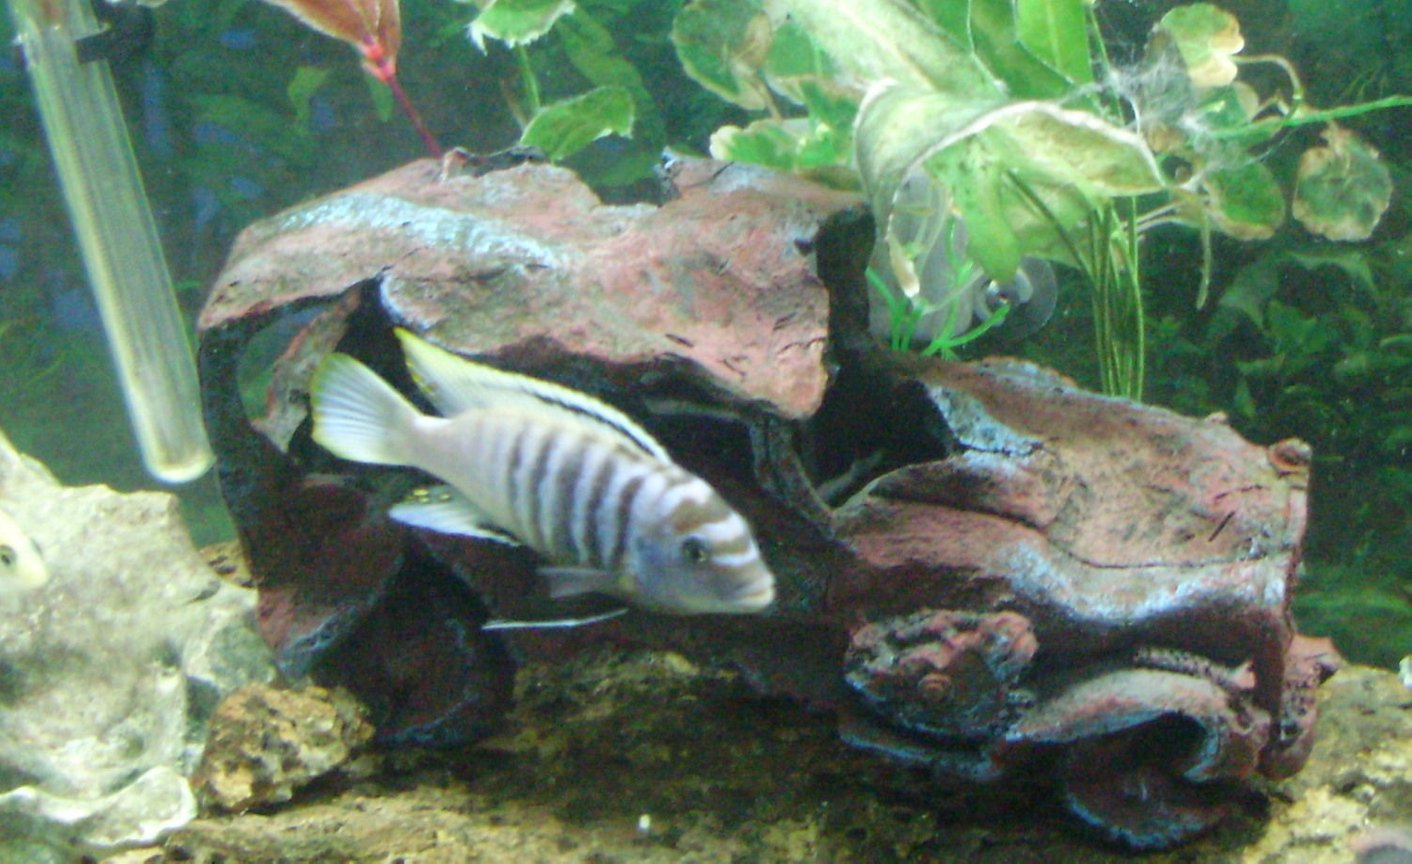 freshwater fish - pseudotropheus saulosi - saulos's mbuna stocking in 70 gallons tank - yellow tip named bubbles 6 inches